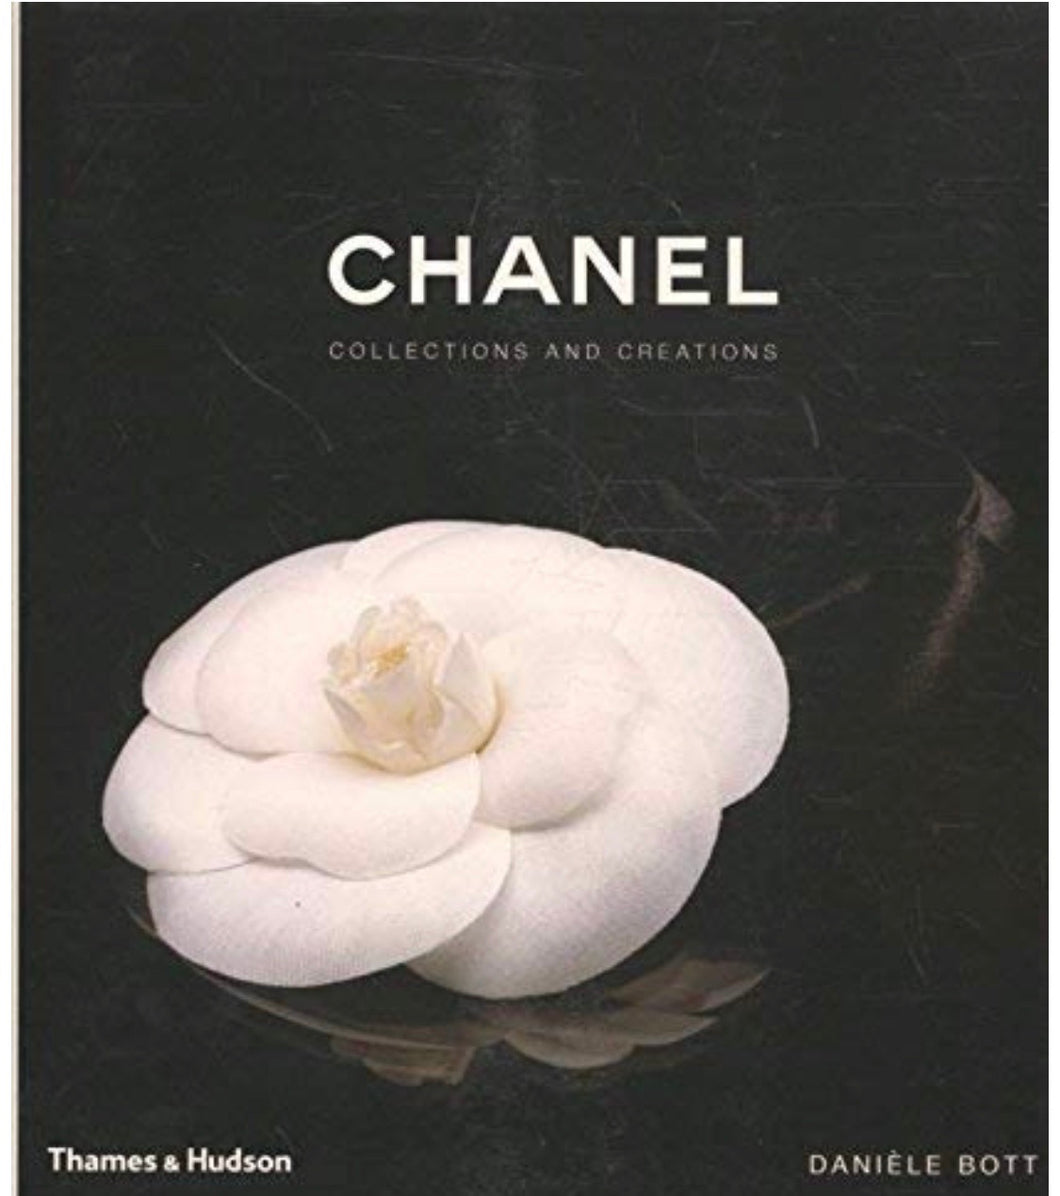 Chanel Collection & Creations